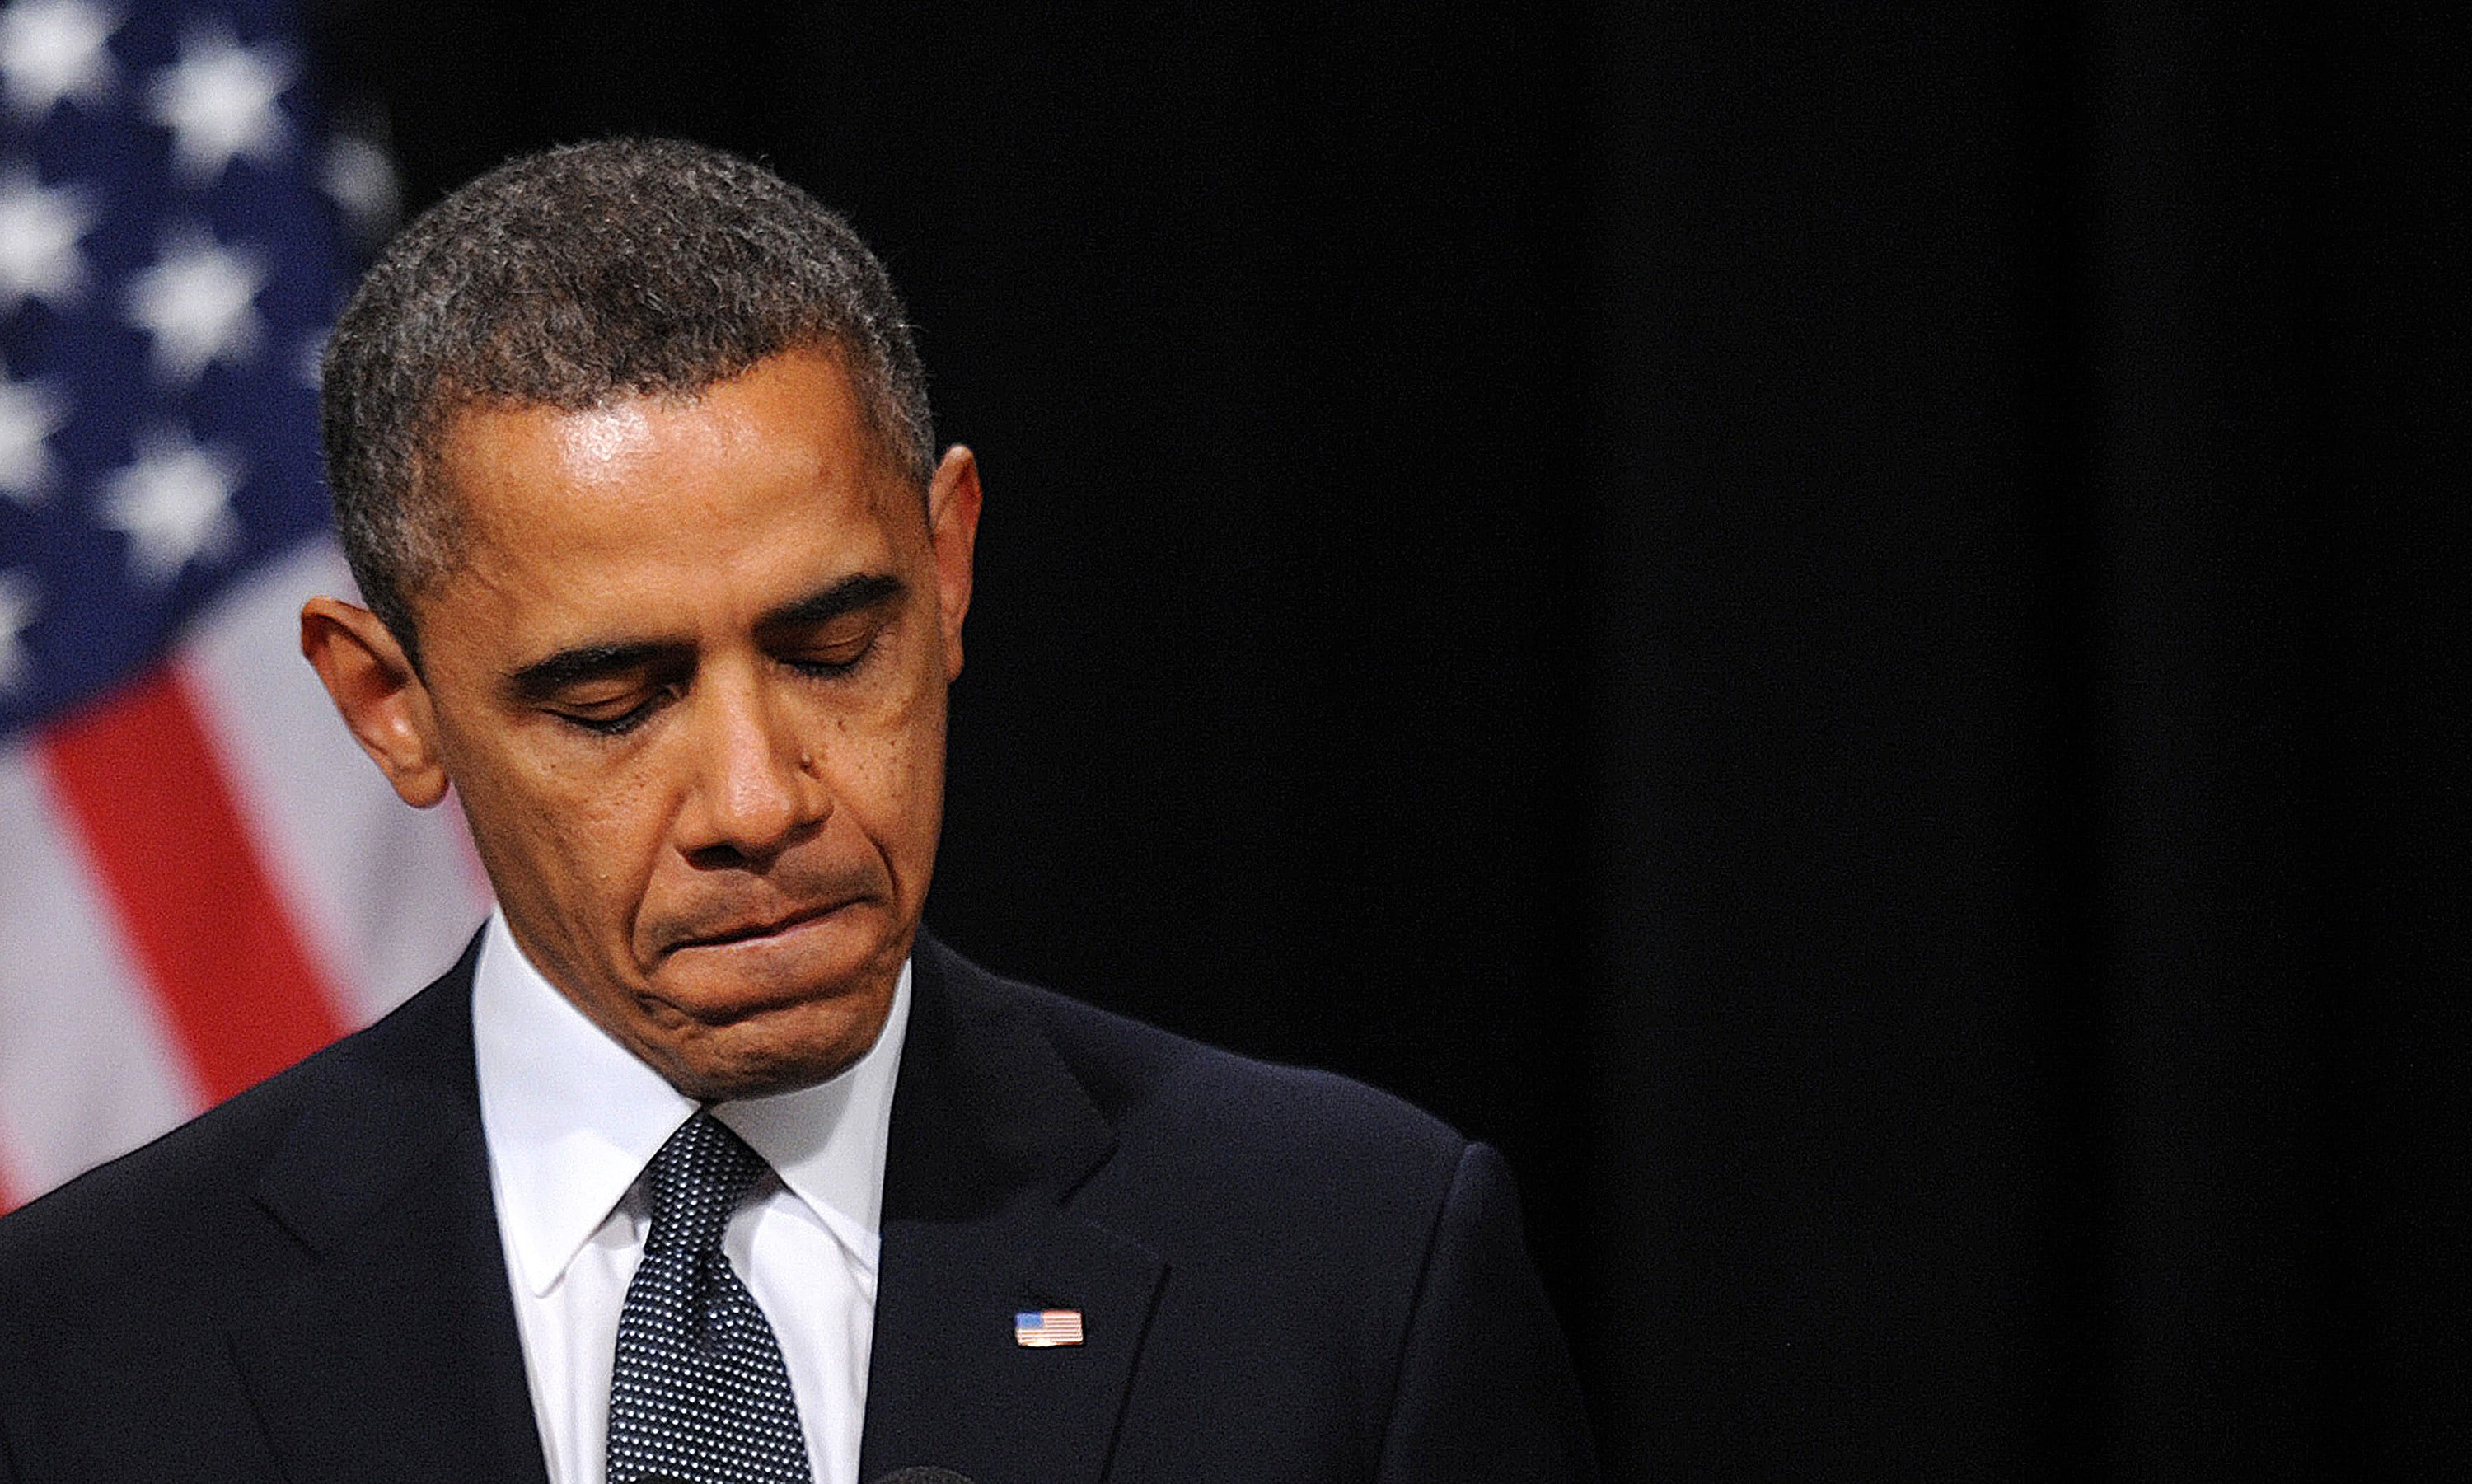 President Obama's sad view of America - The Washington Post